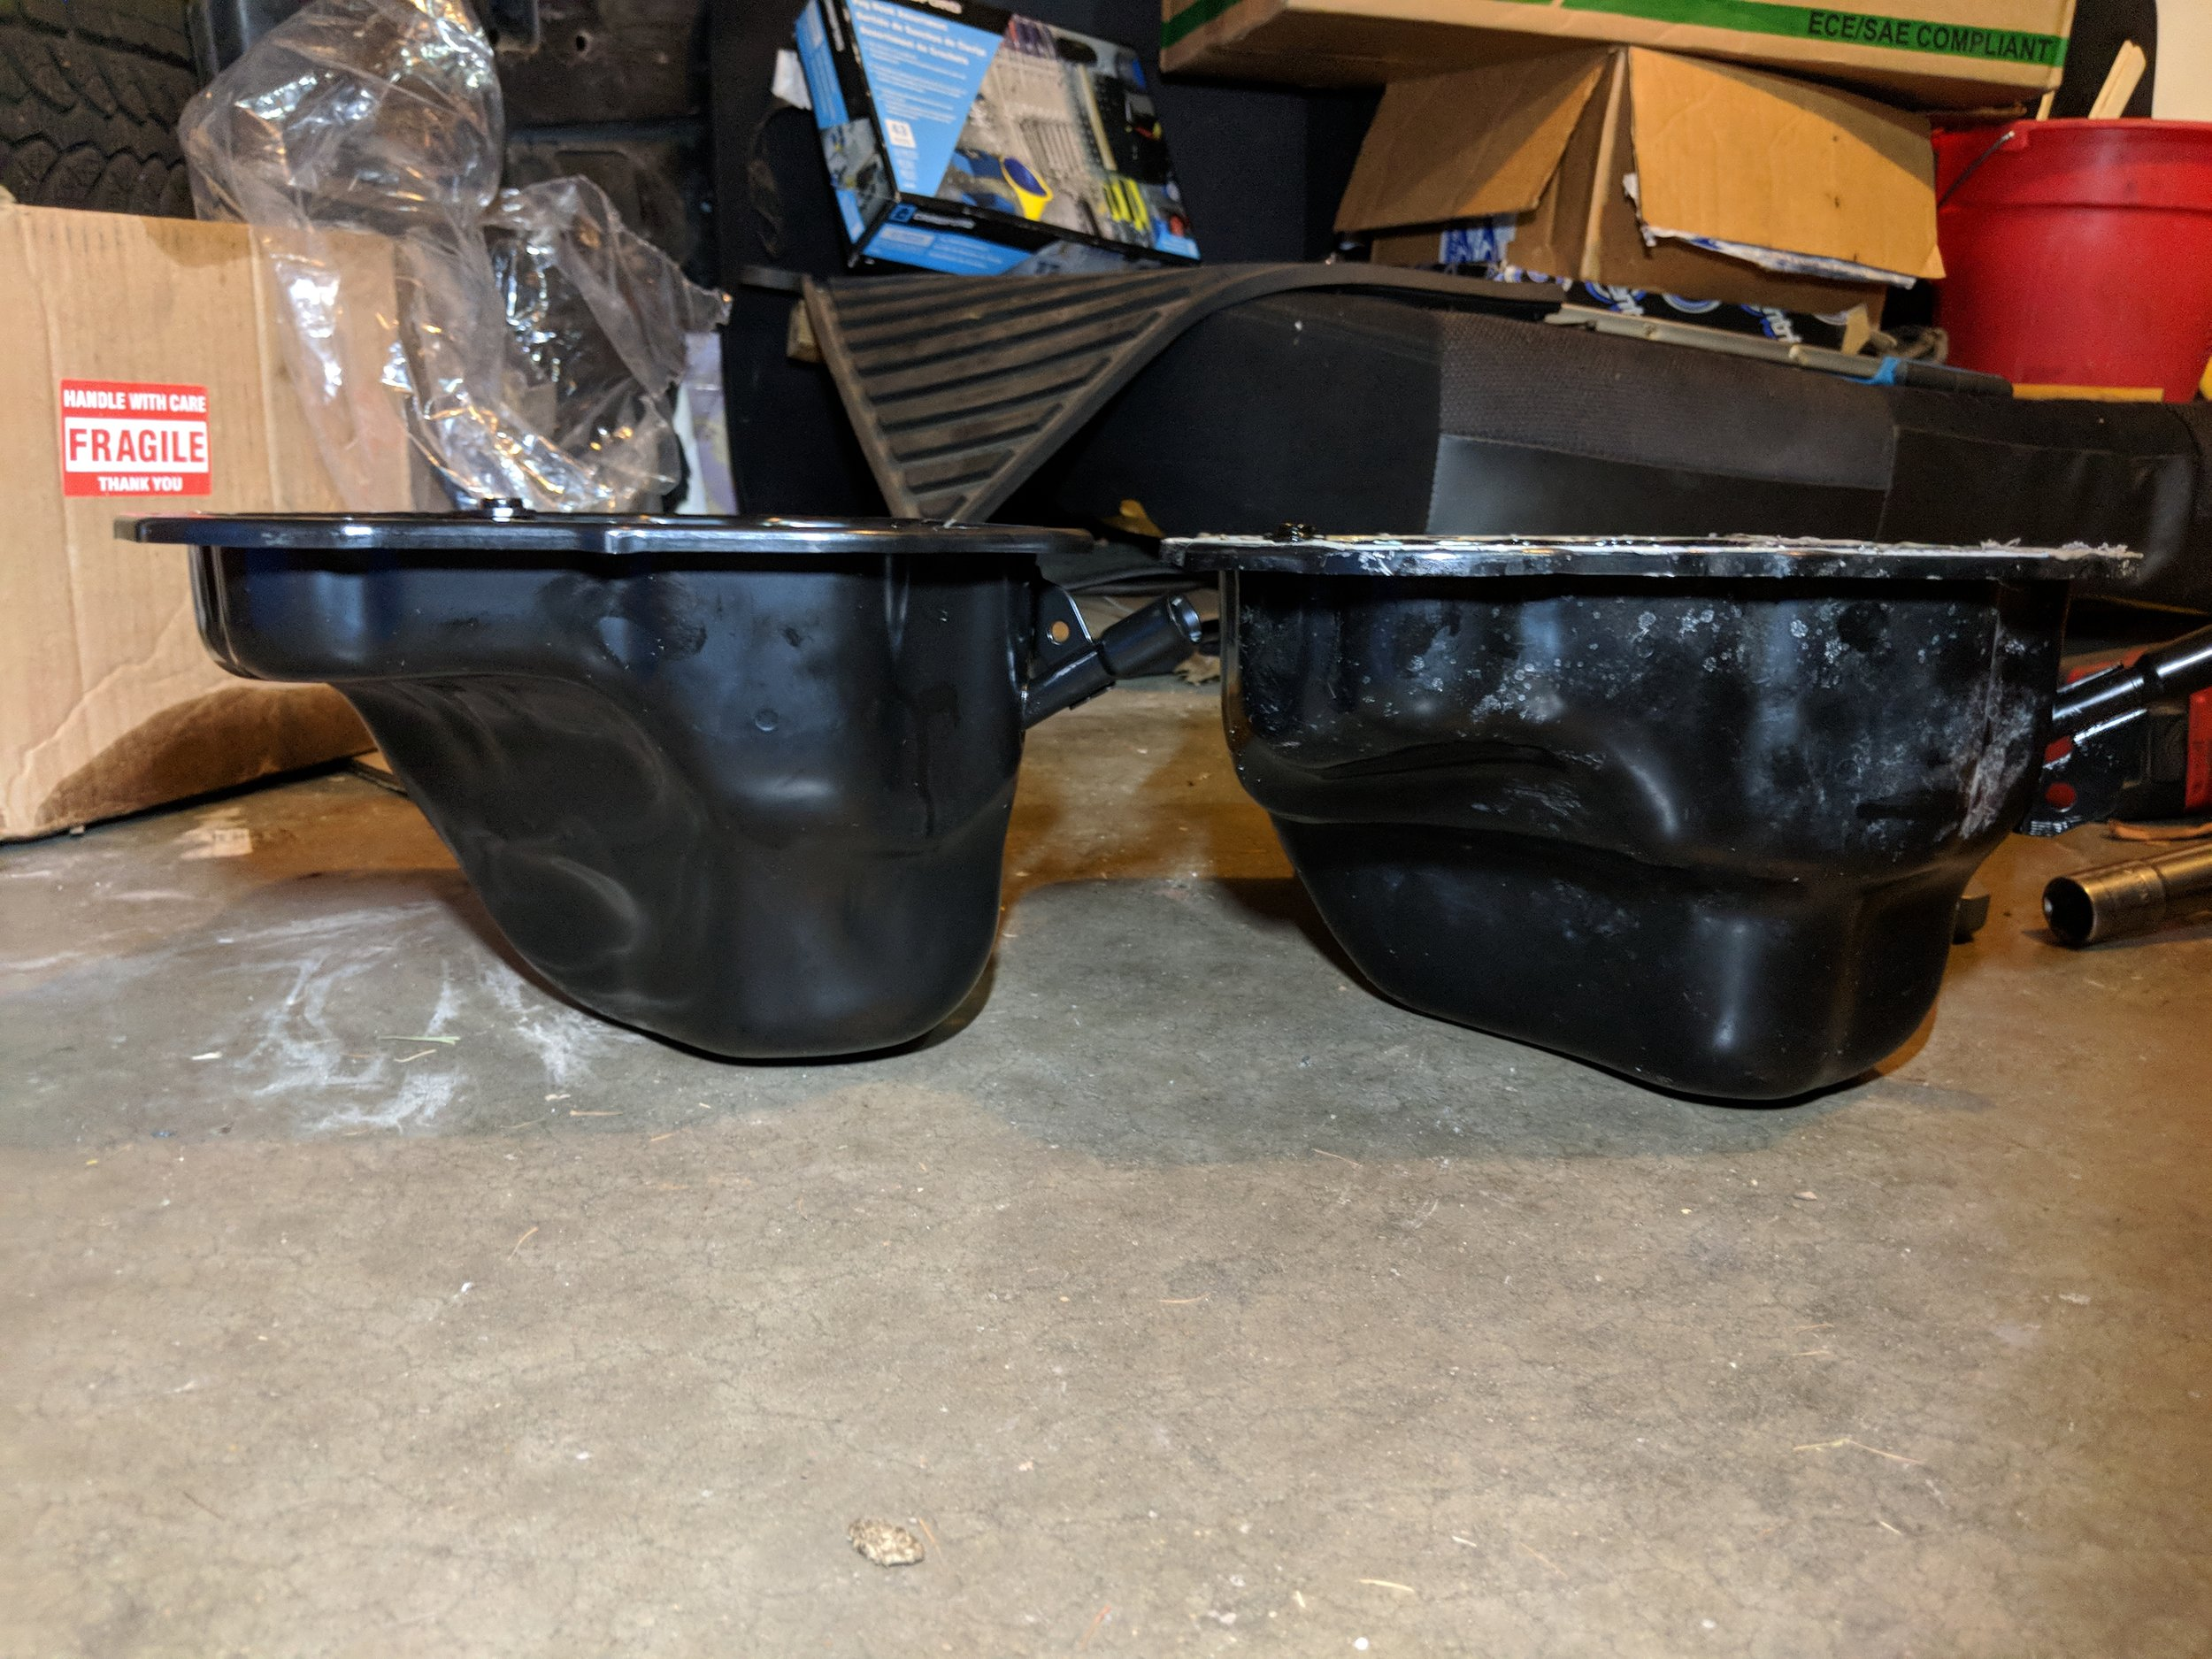 06+ STI oil pan on the left and 04-05 STi pan on the right. The lower protrusion on the left side cause the MAPerformance header to be unable to be fitted.